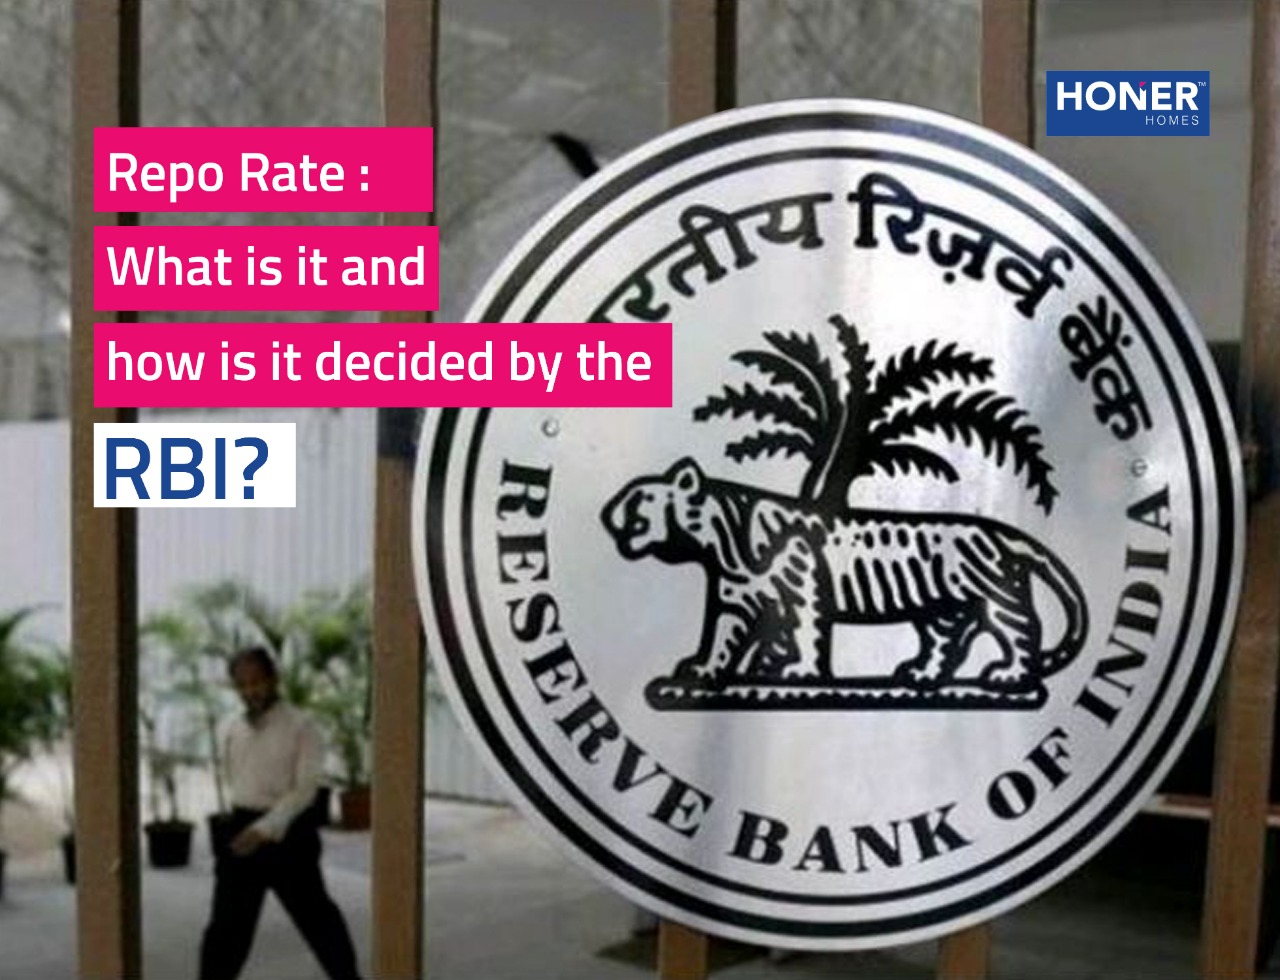 Repo Rate: What is it and how is it decided by the RBI